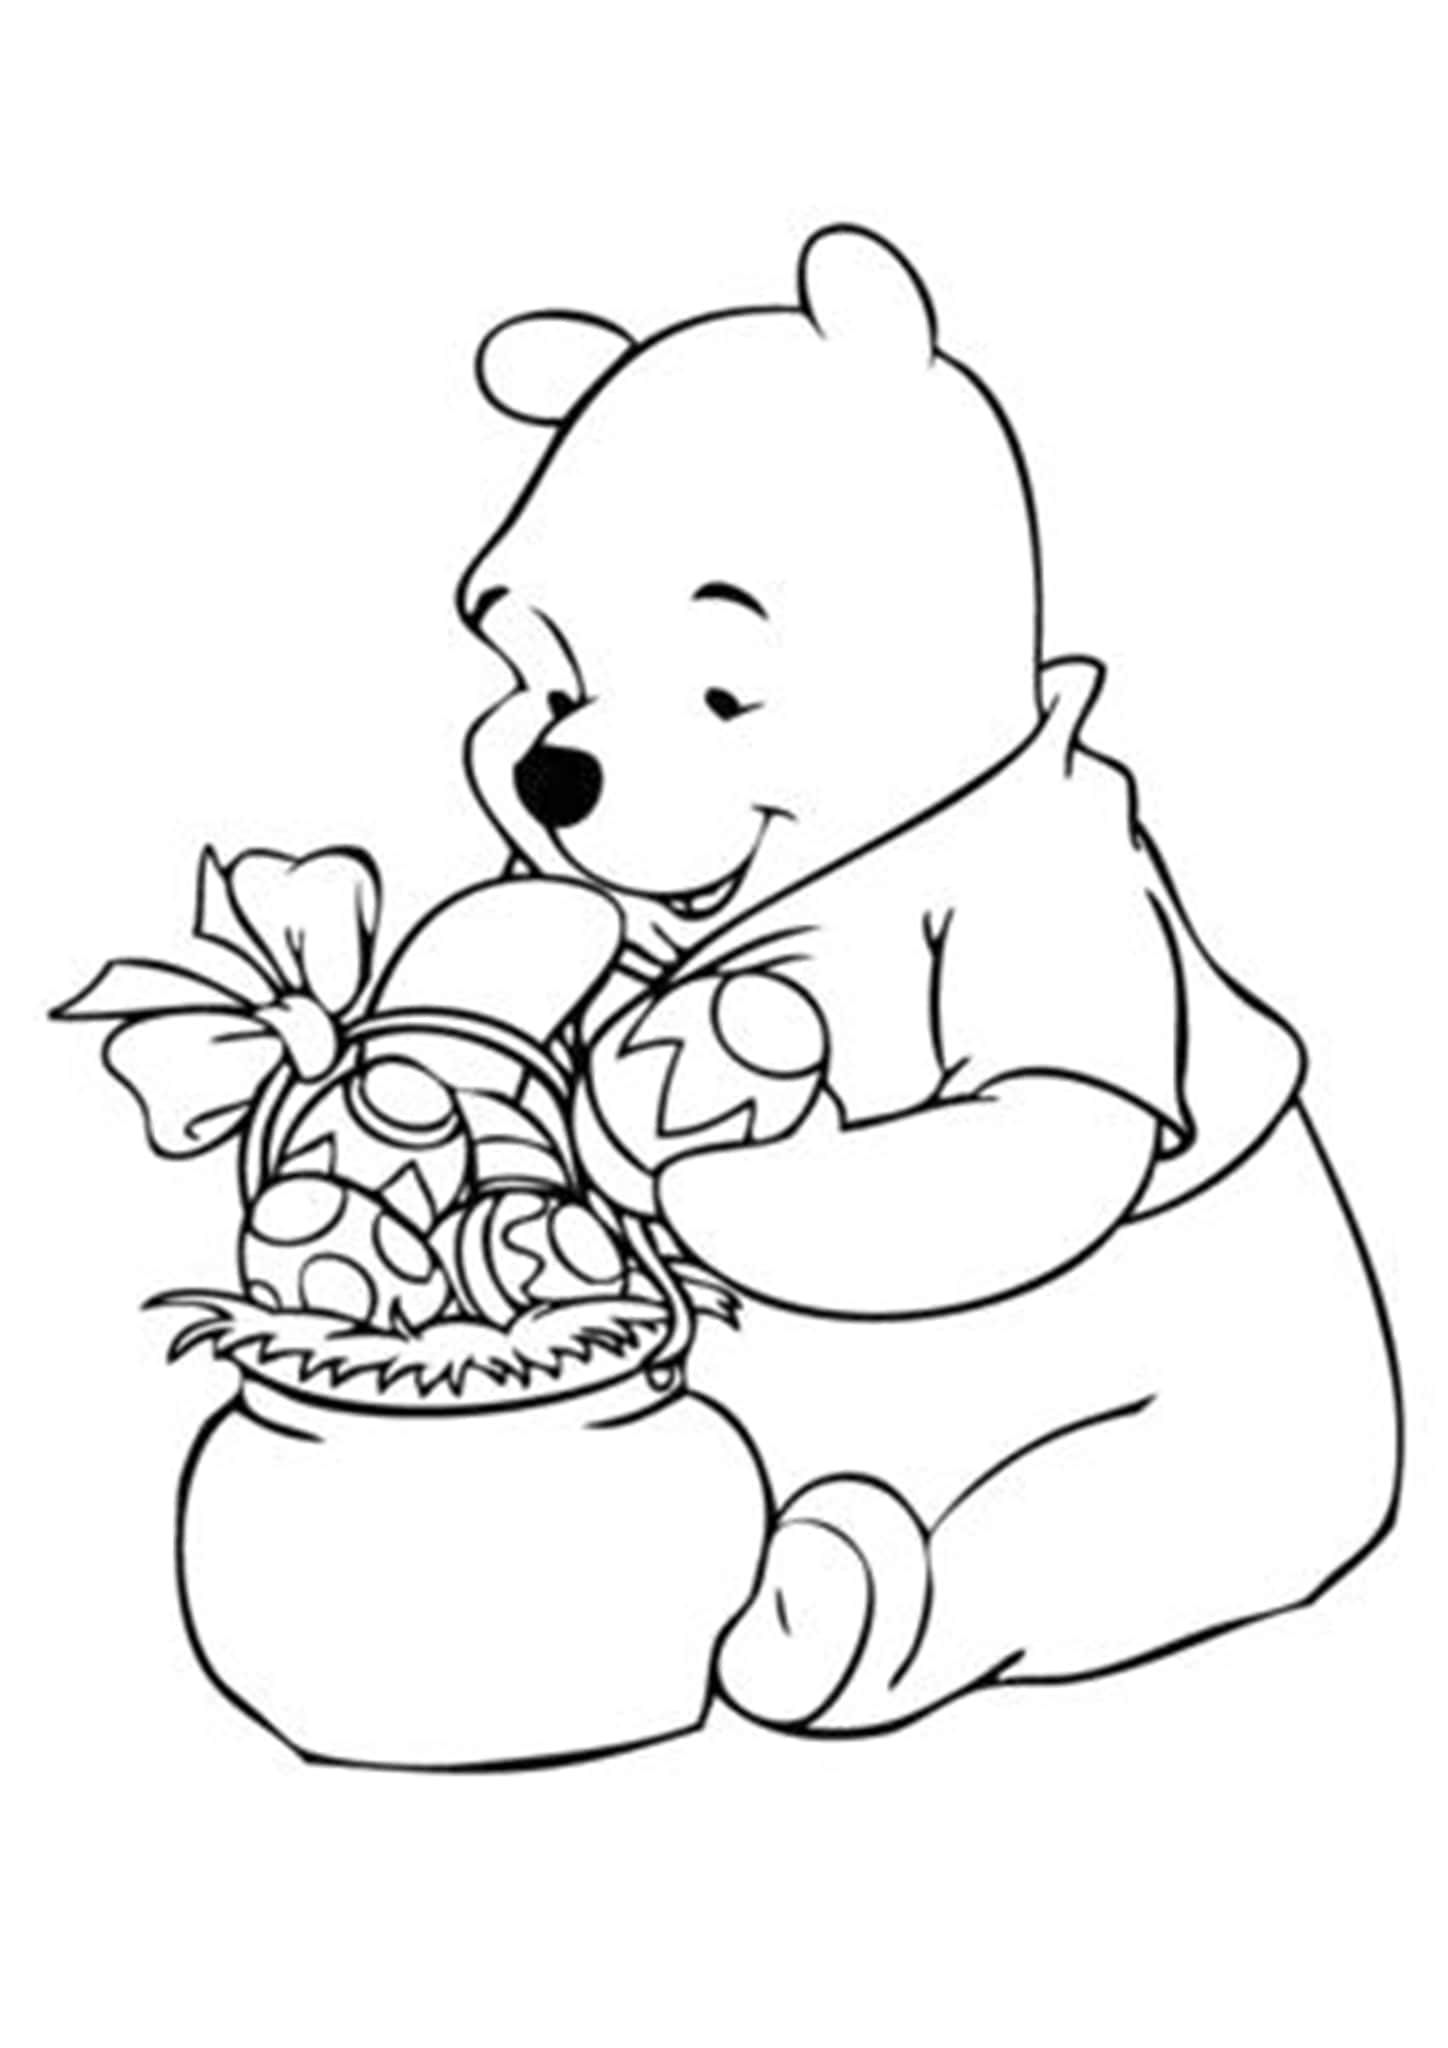 Free Easy To Print Winnie The Pooh Coloring Pages Easter Coloring Pages Winnie The Pooh Coloring Pages Easter Coloring Book